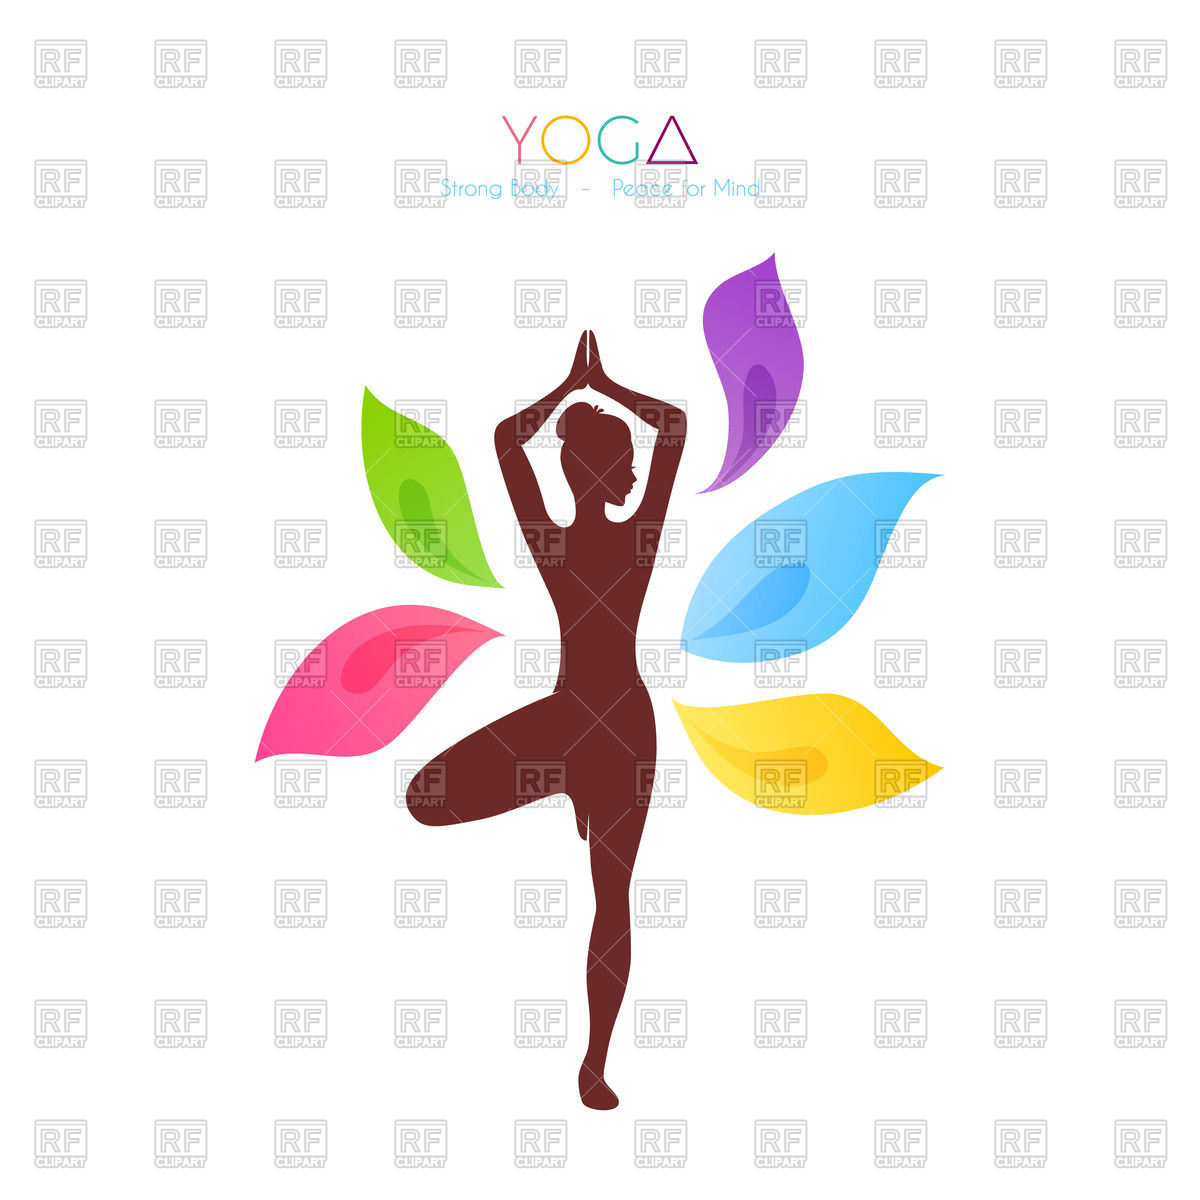 free yoga clipart silhouette at getdrawings com free for personal